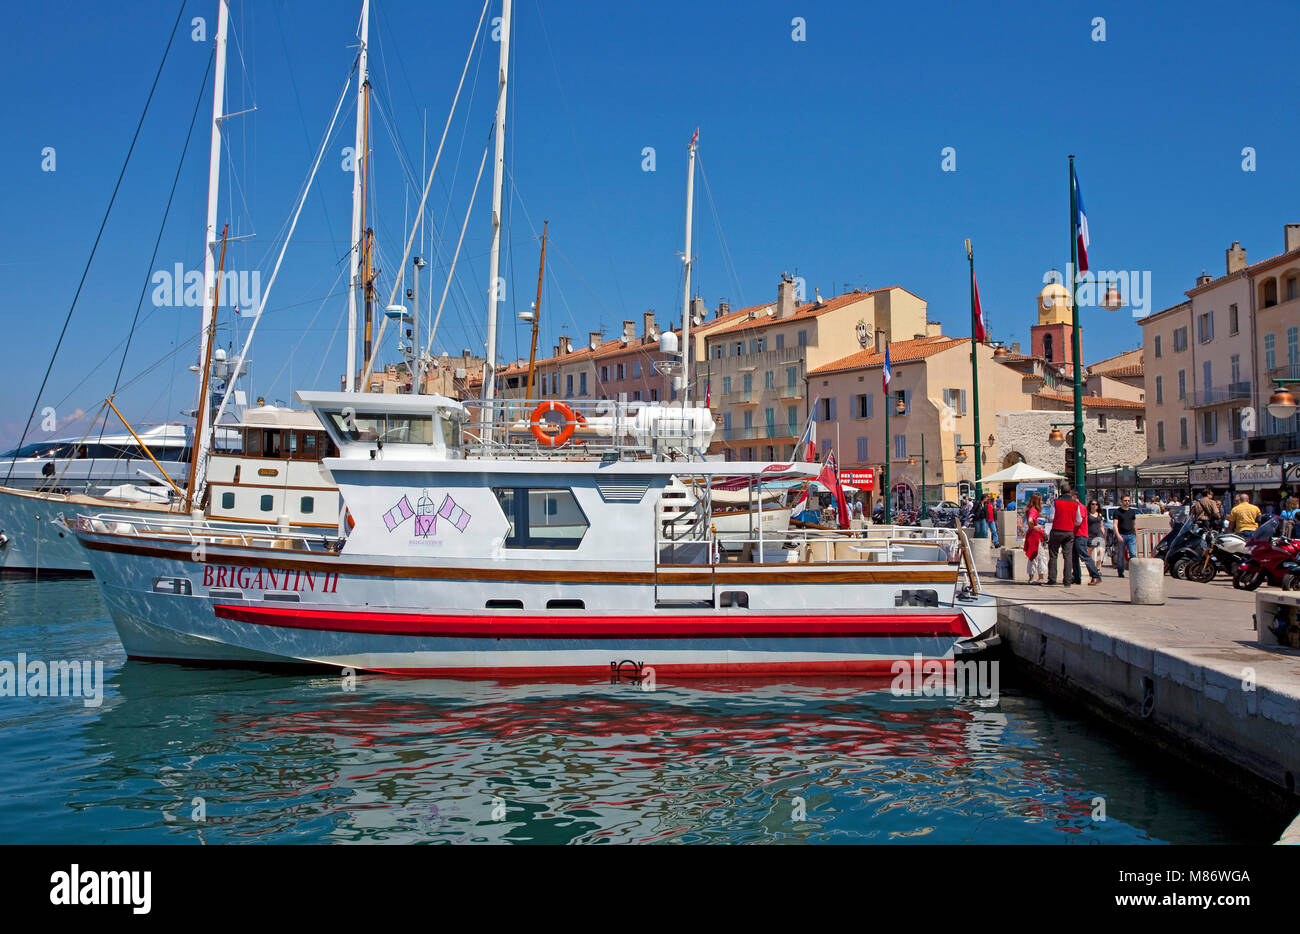 Strolling promenade at harbour of Saint-Tropez, french riviera, South France, Cote d'Azur, France, Europe - Stock Image